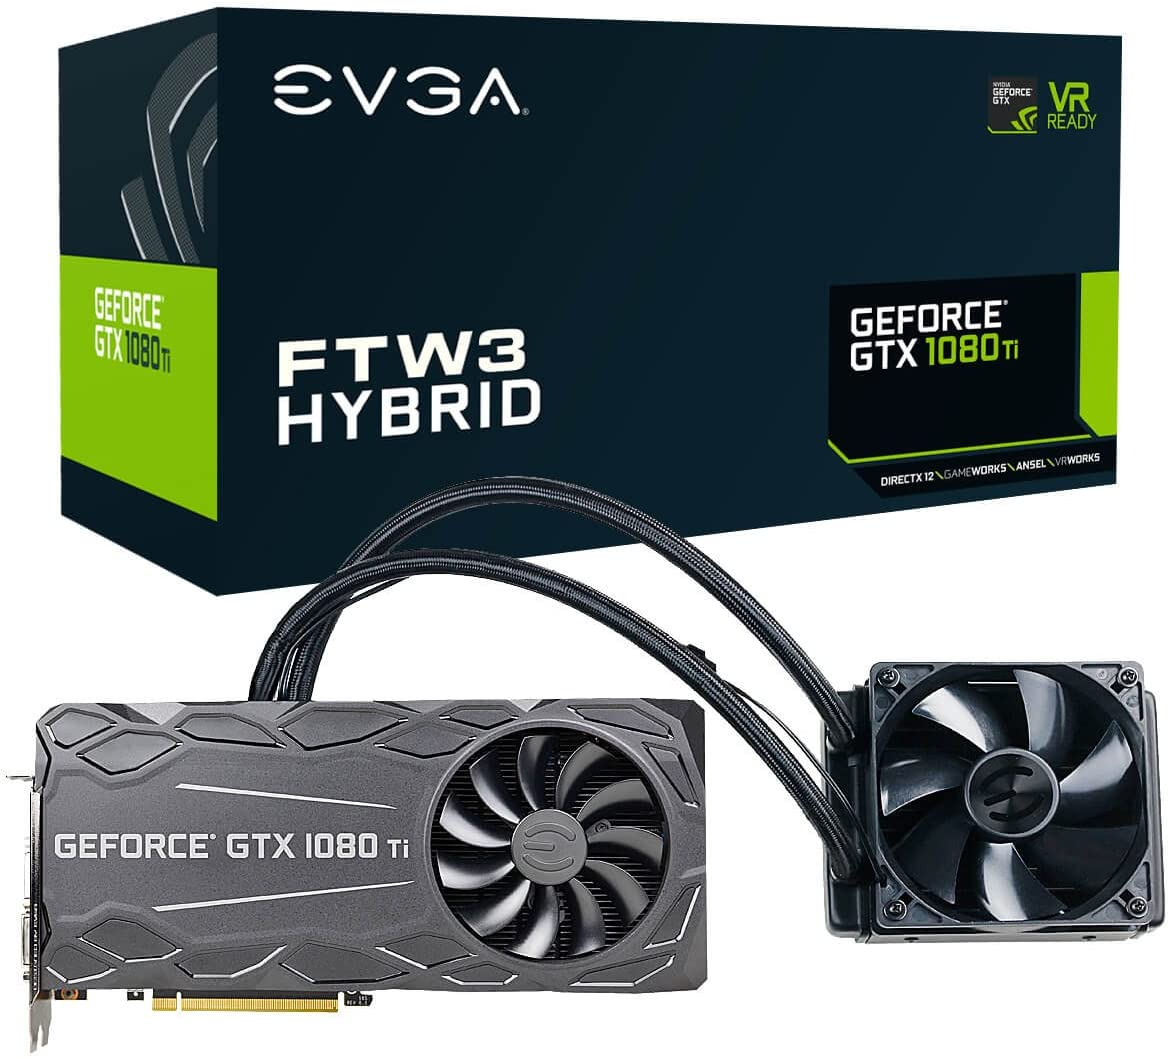 EVGA GeForce GTX 1080 Ti FTW3 HYBRID GAMING، 11GB GDDR5X، HYBRID & RGB LED، تقنية iCX - 9 حساسات حرارية بطاقة رسومات 11G-P4-6698-KR